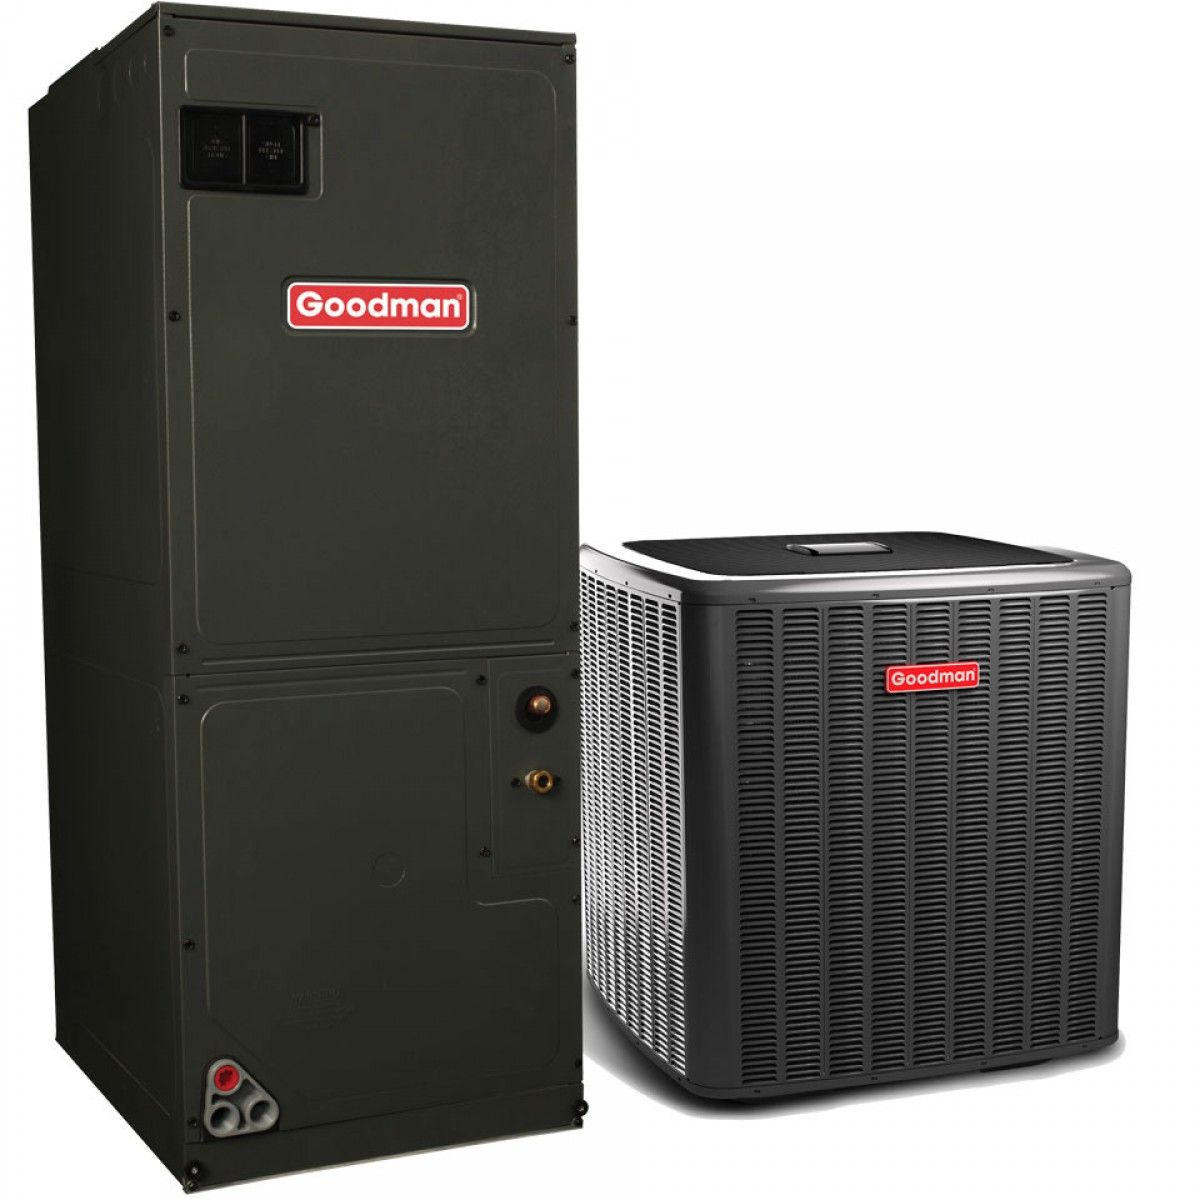 Goodman 4 0 Ton 15 Seer Variable Speed Air Conditioning